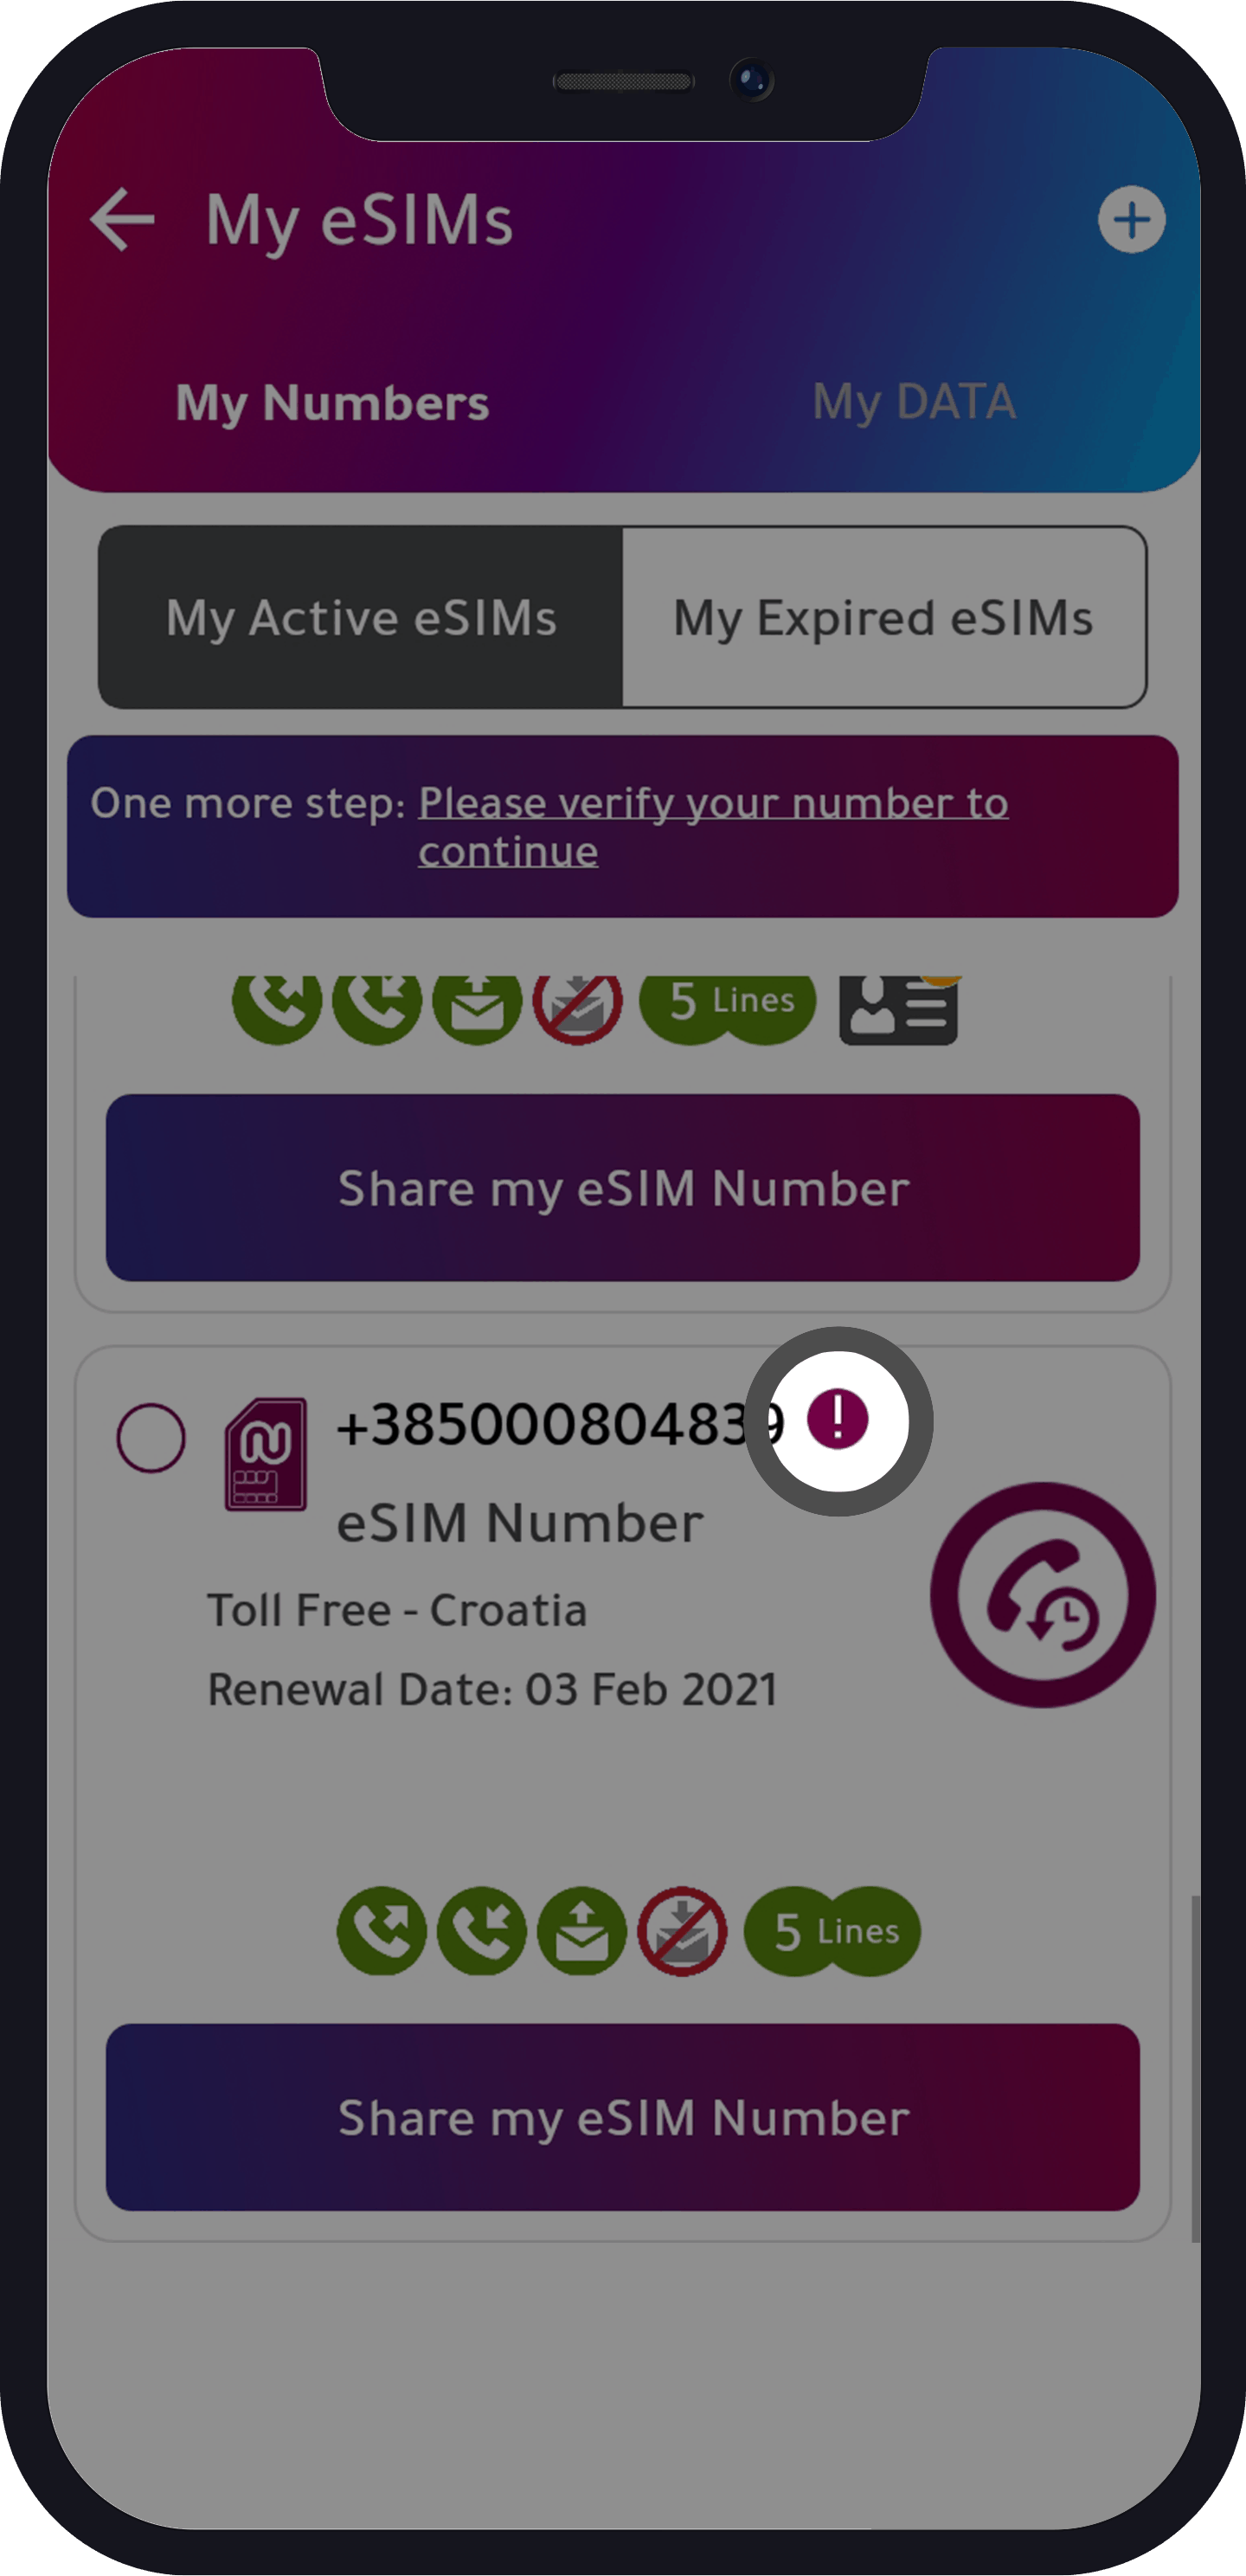 know more details about your toll free number